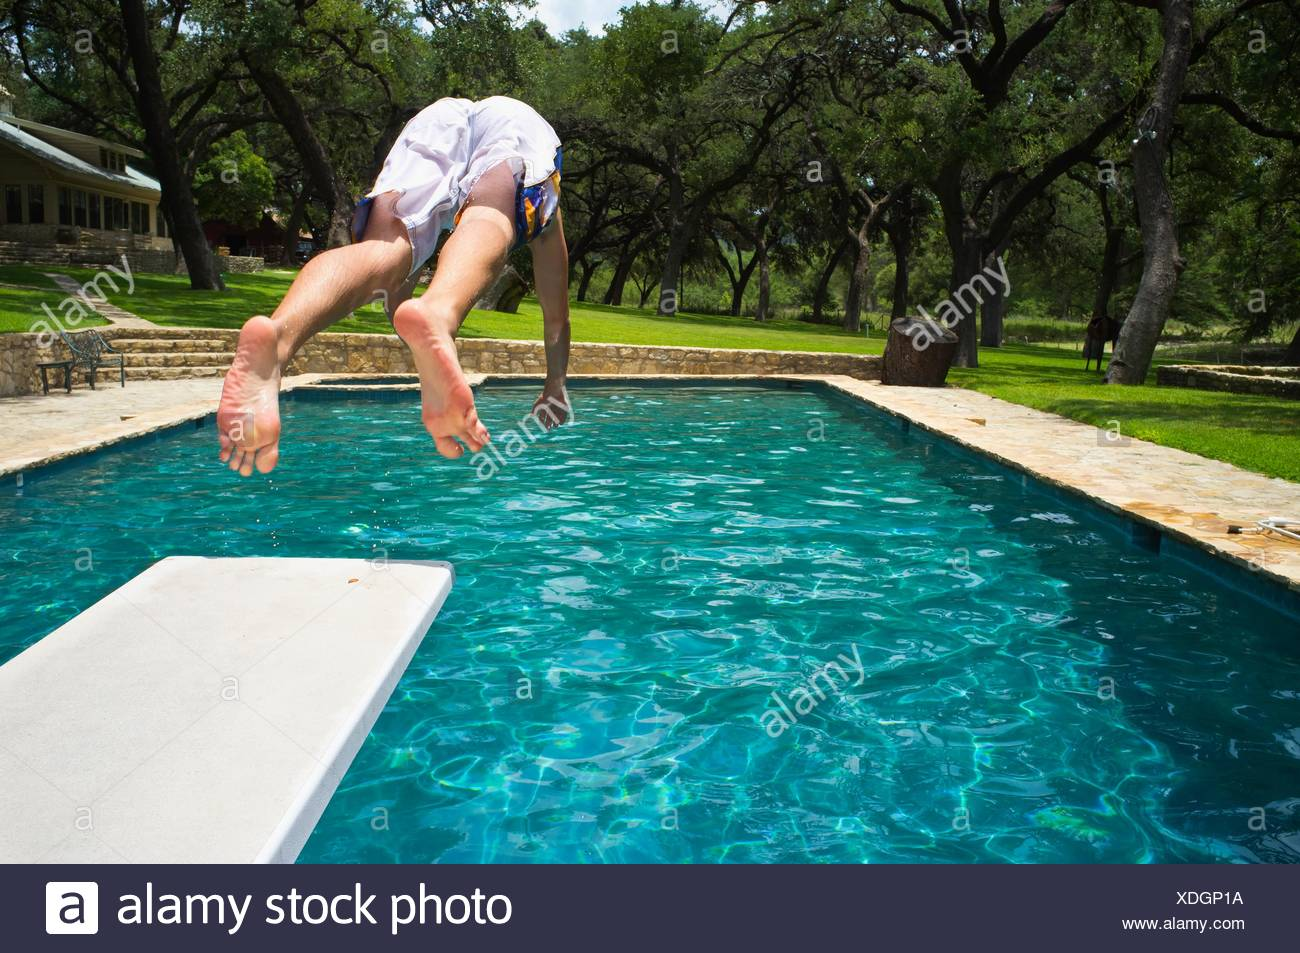 Young man, 17 years old, caucasian, jumping from diving board into ...